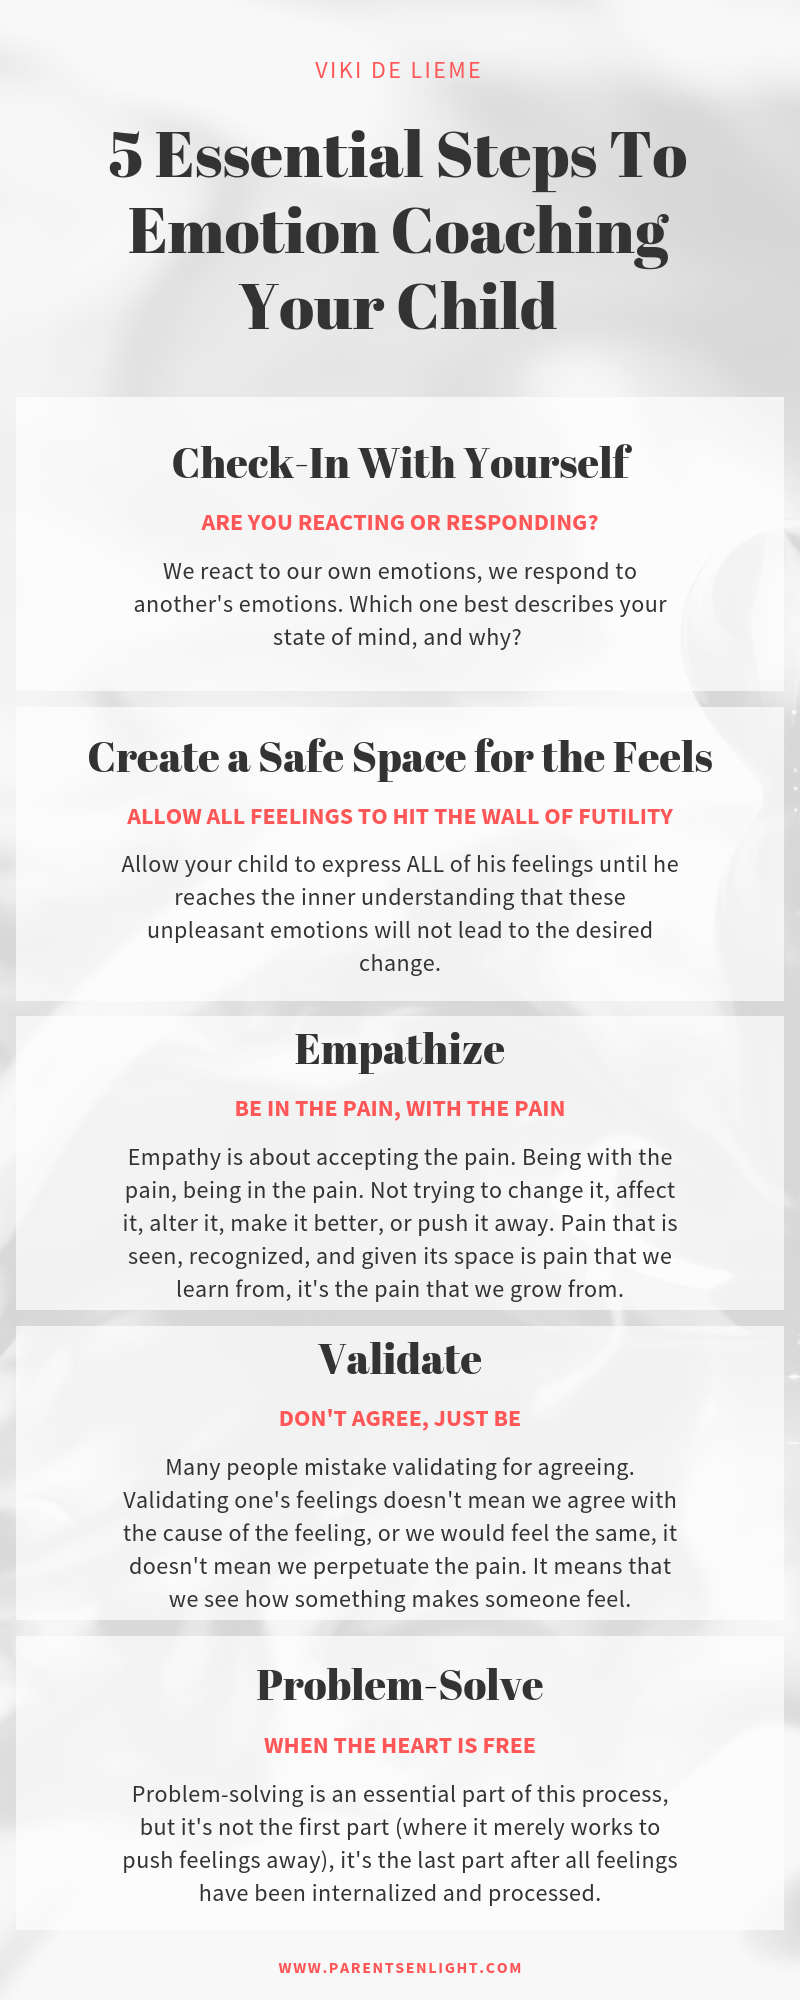 5 Essential Steps to Emotion Coaching Your Child #emotioncoaching #emotioncoachingchildren #mindfulness #mindfulparenting #parenting